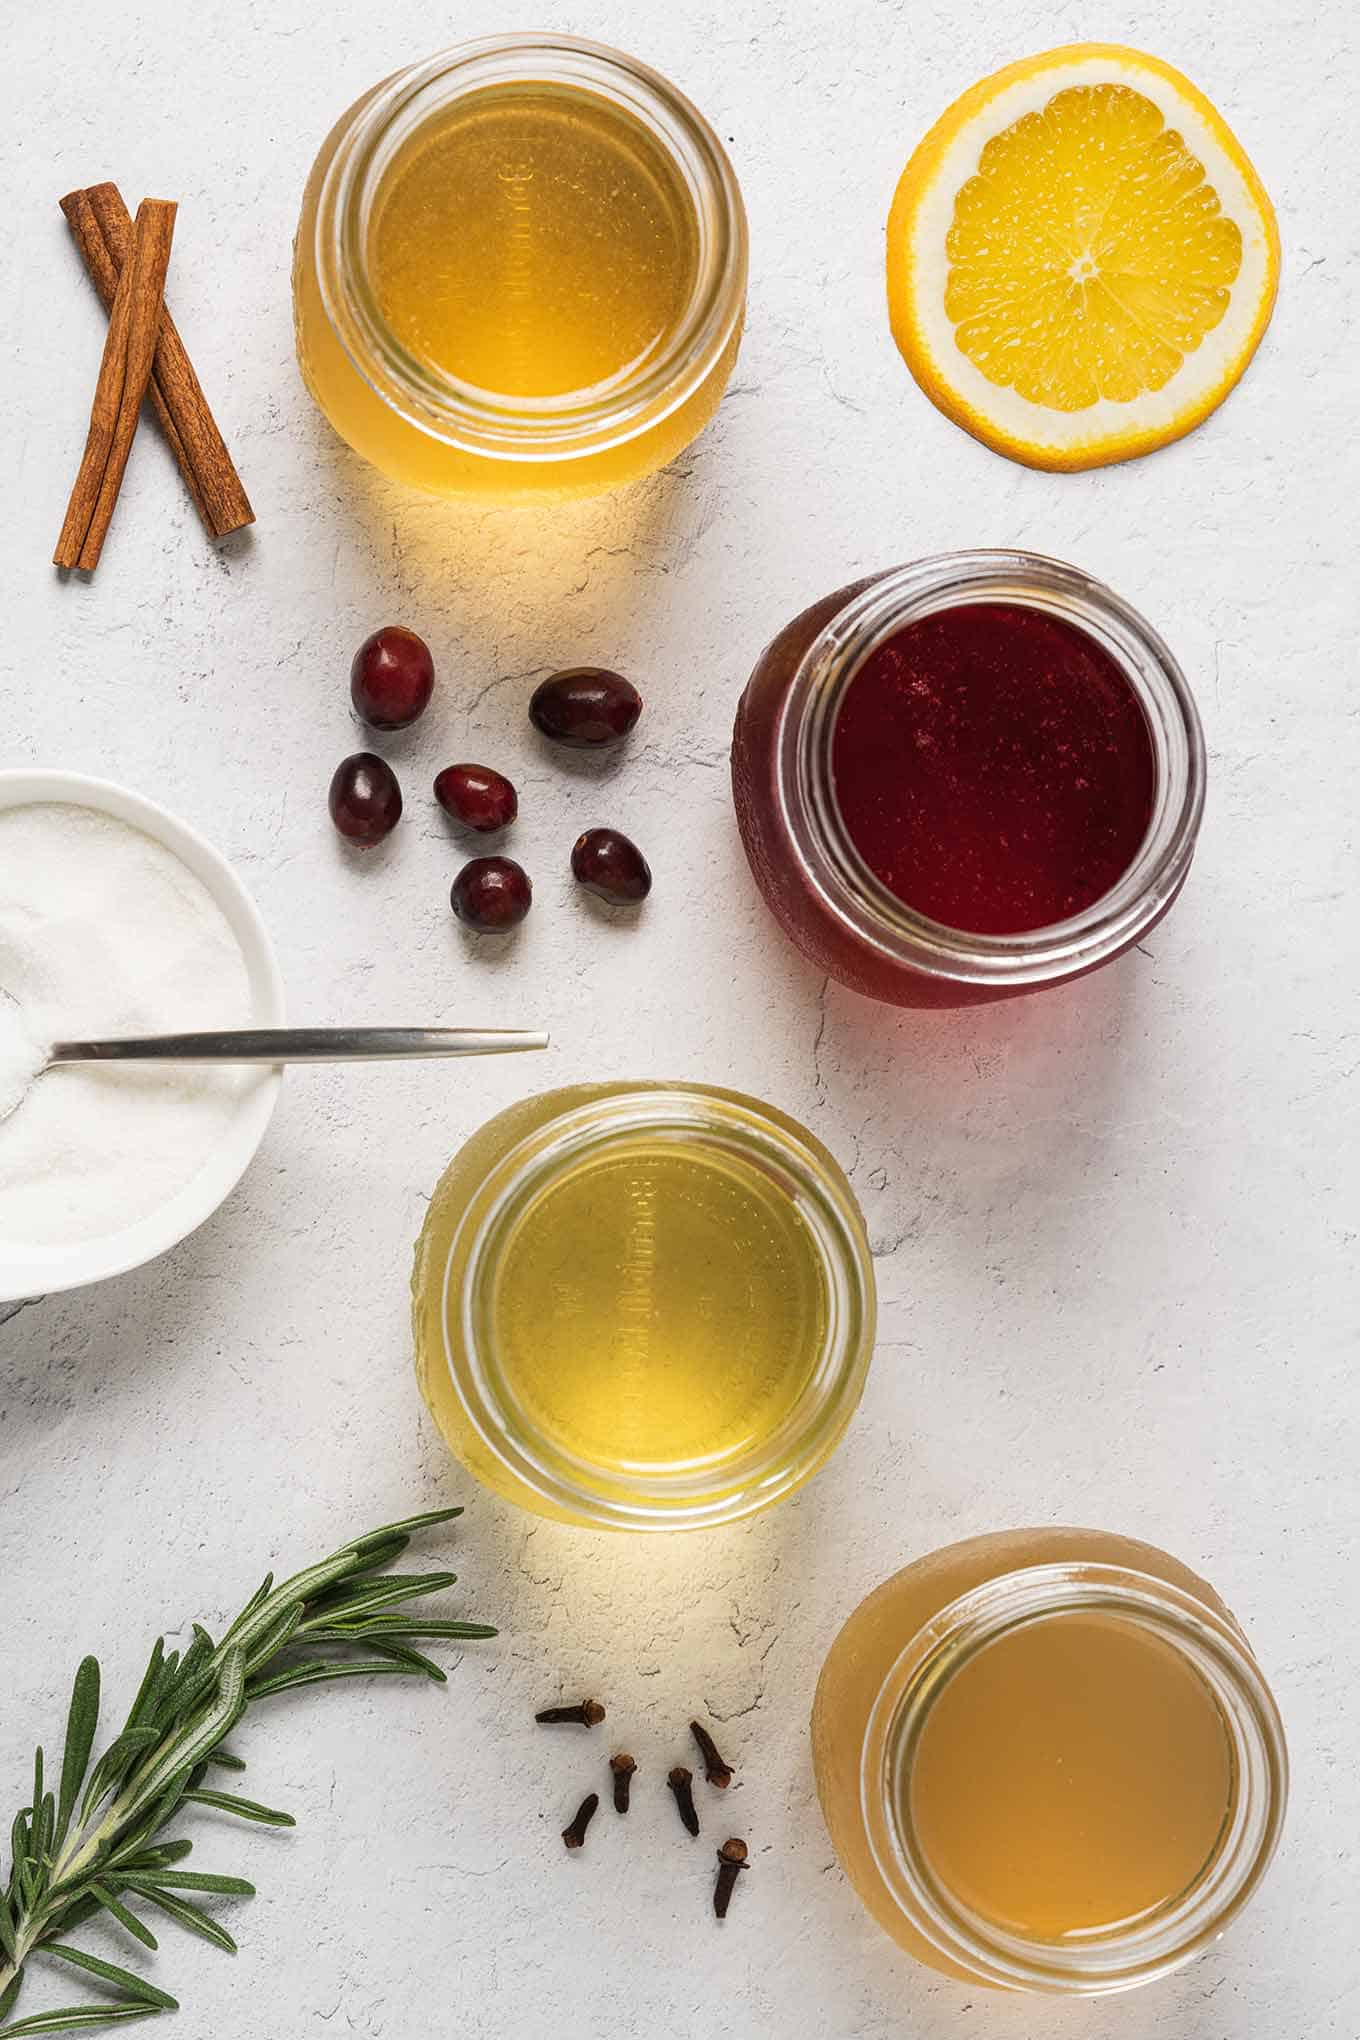 Top view of spiced simple syrups in jars: orange, cranberry, rosemary and ginger.